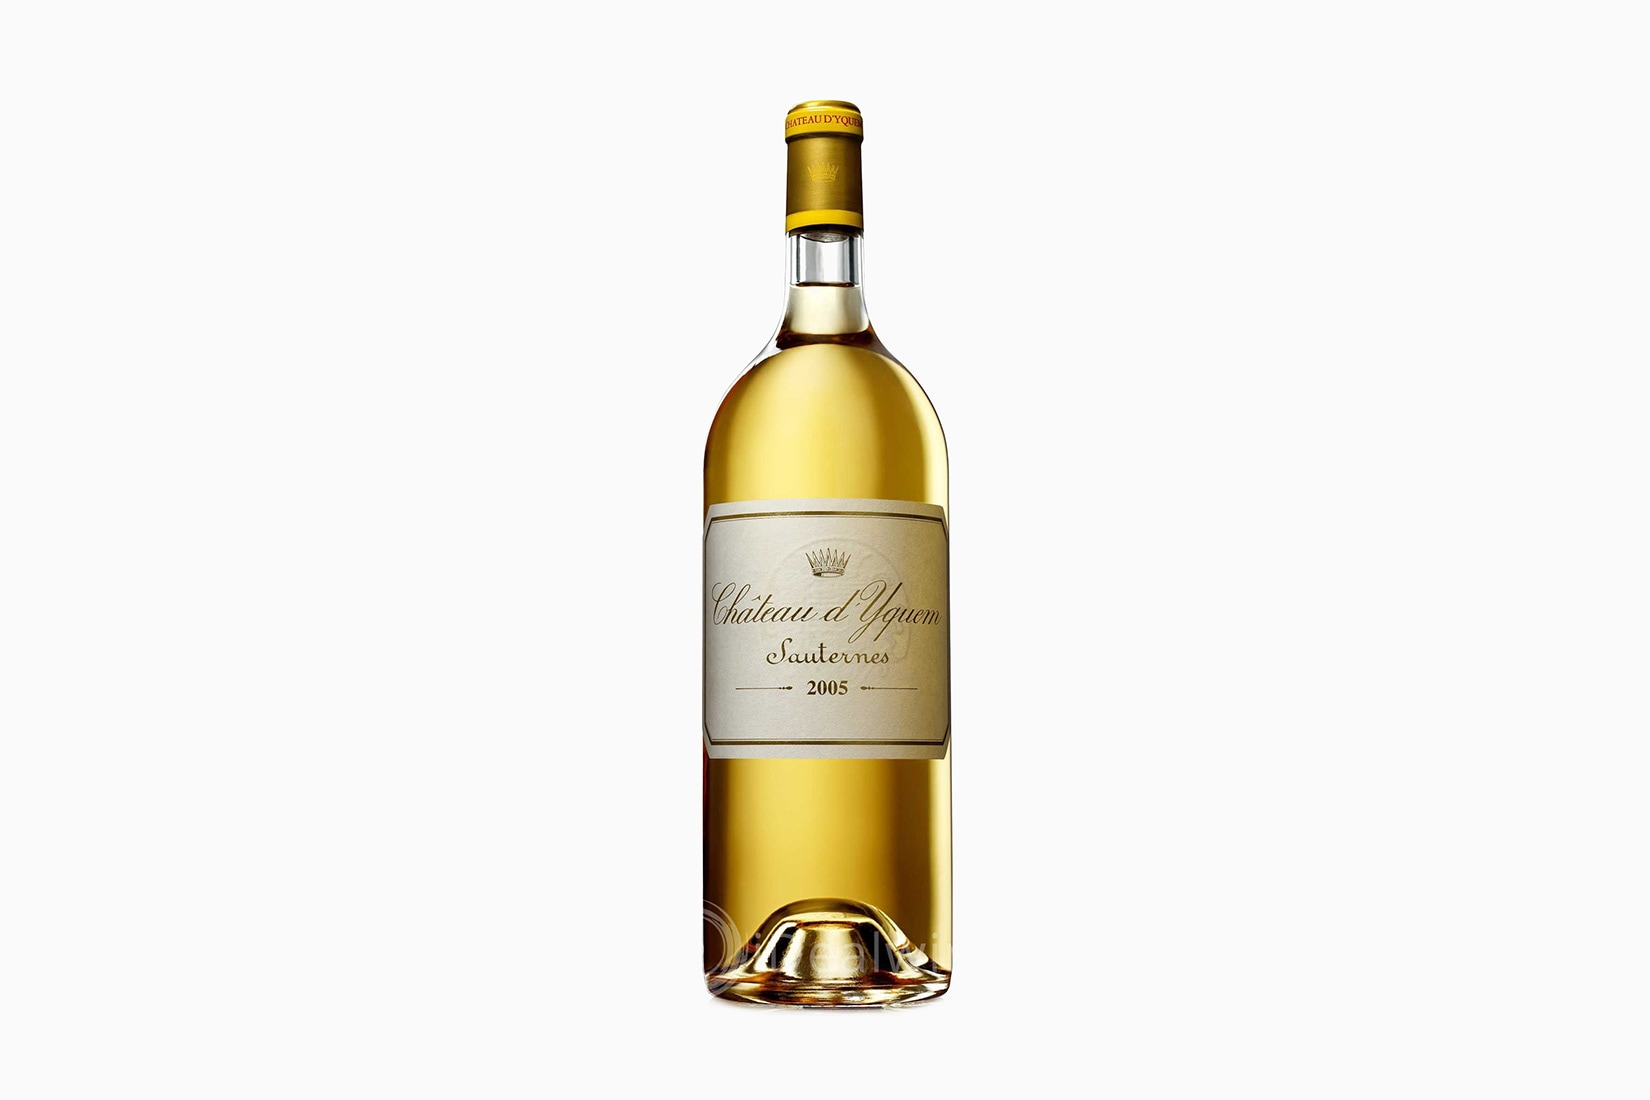 best wine chateau d'yquem sauternes - Luxe Digital